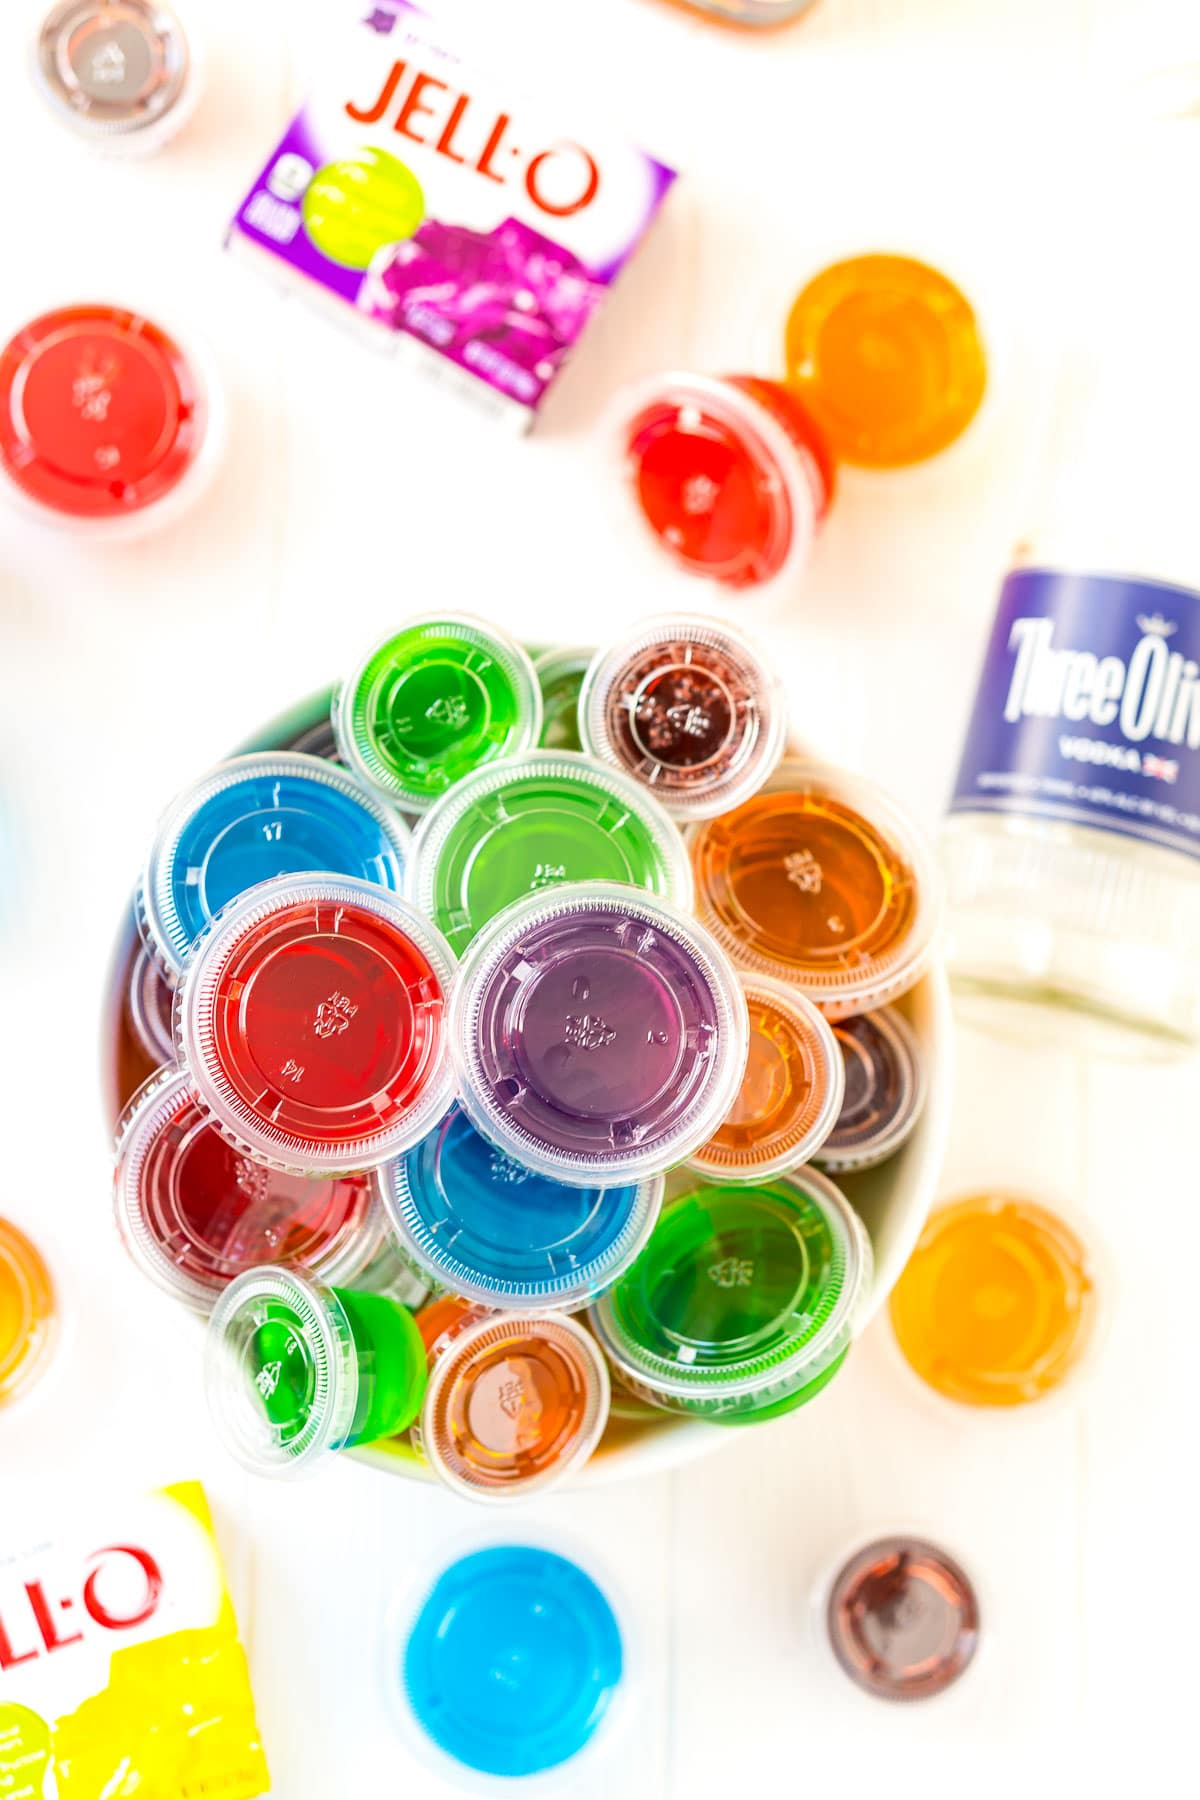 Bowl full of multi-colored jello shots with more jello shots, boxes of Jell-O, and a bottle of vodka around it.